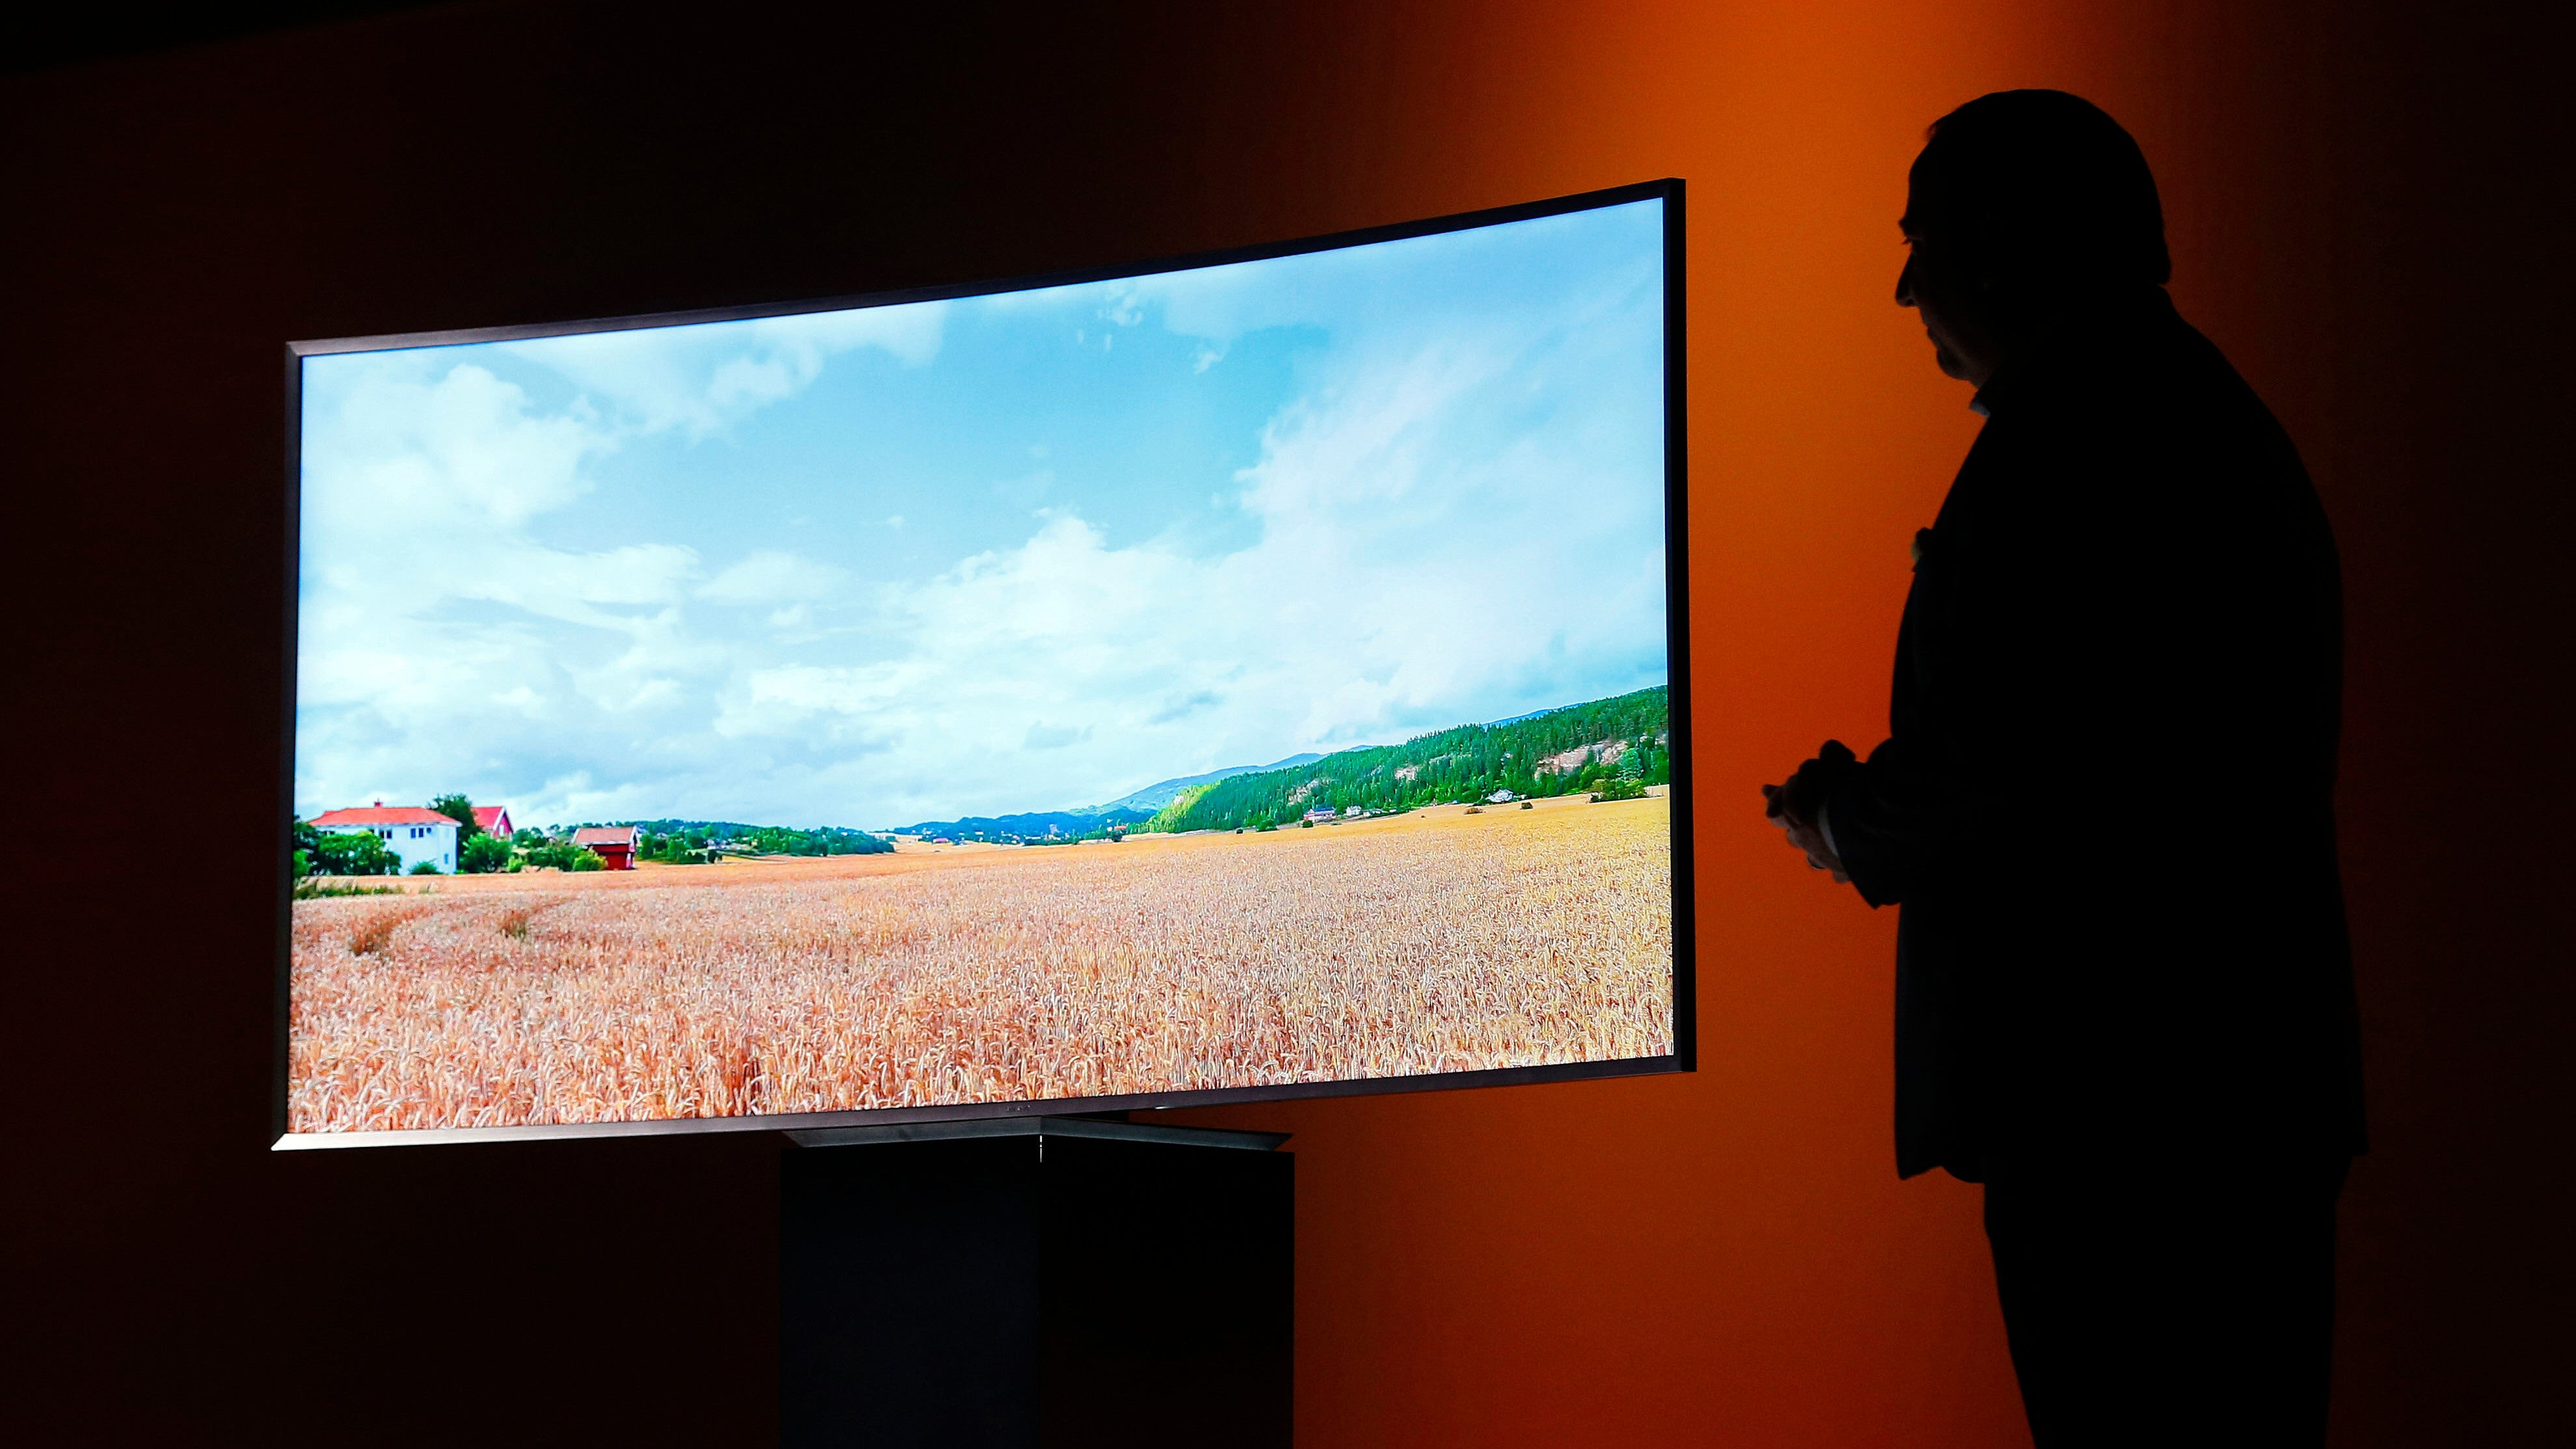 New US Regulation Raises Concerns Over Spying TVs And Obsolescence